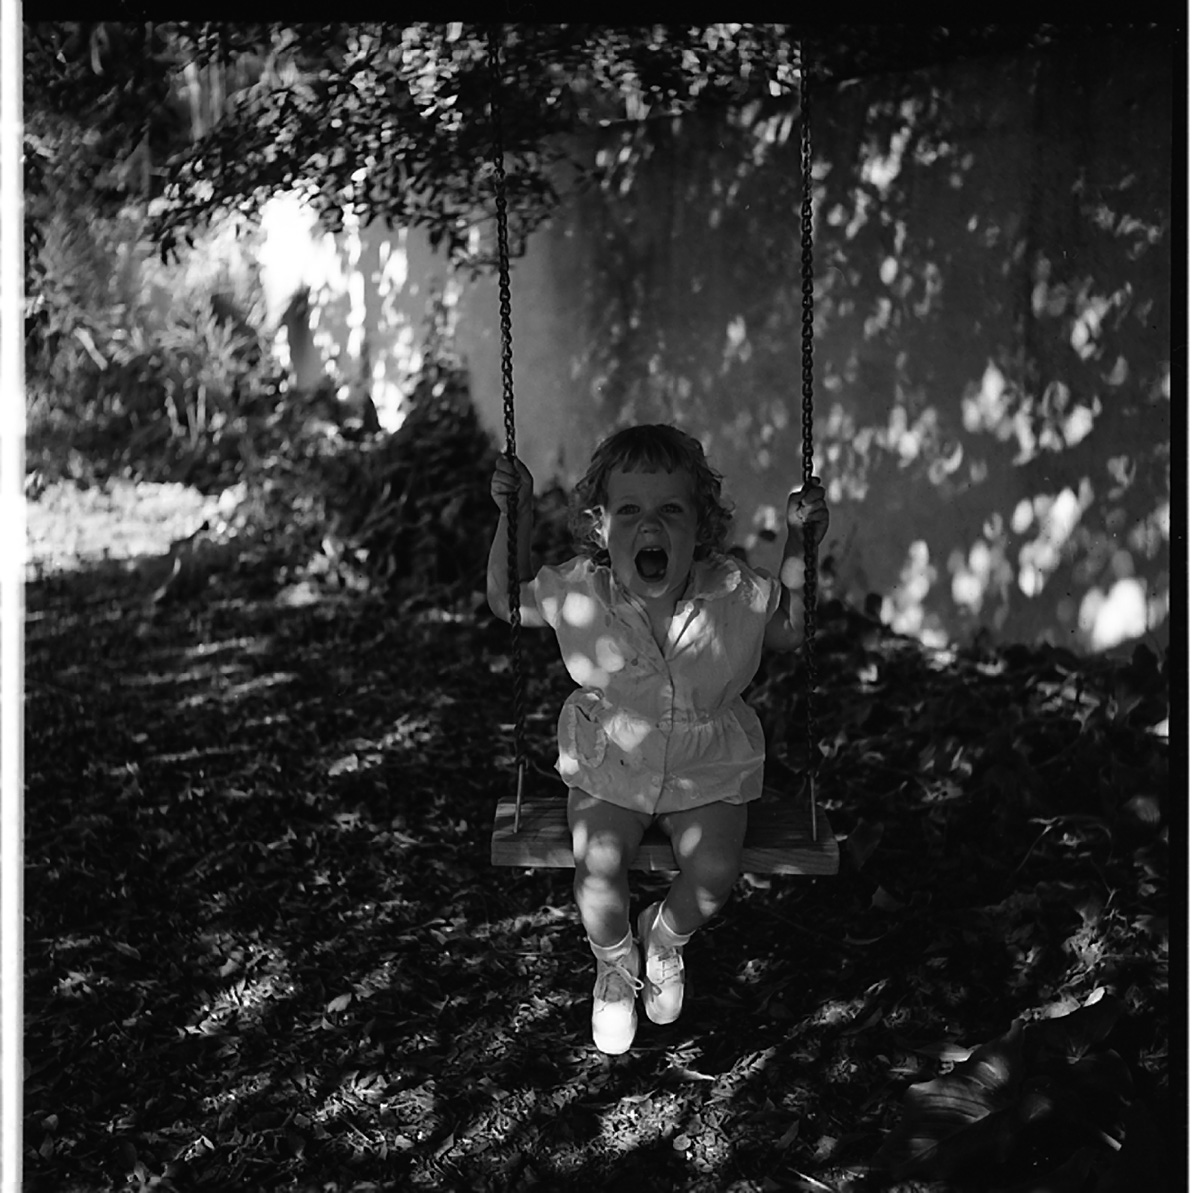 Vivian Maier, Little Girl Swining in Shadows, Los Angeles, 1955